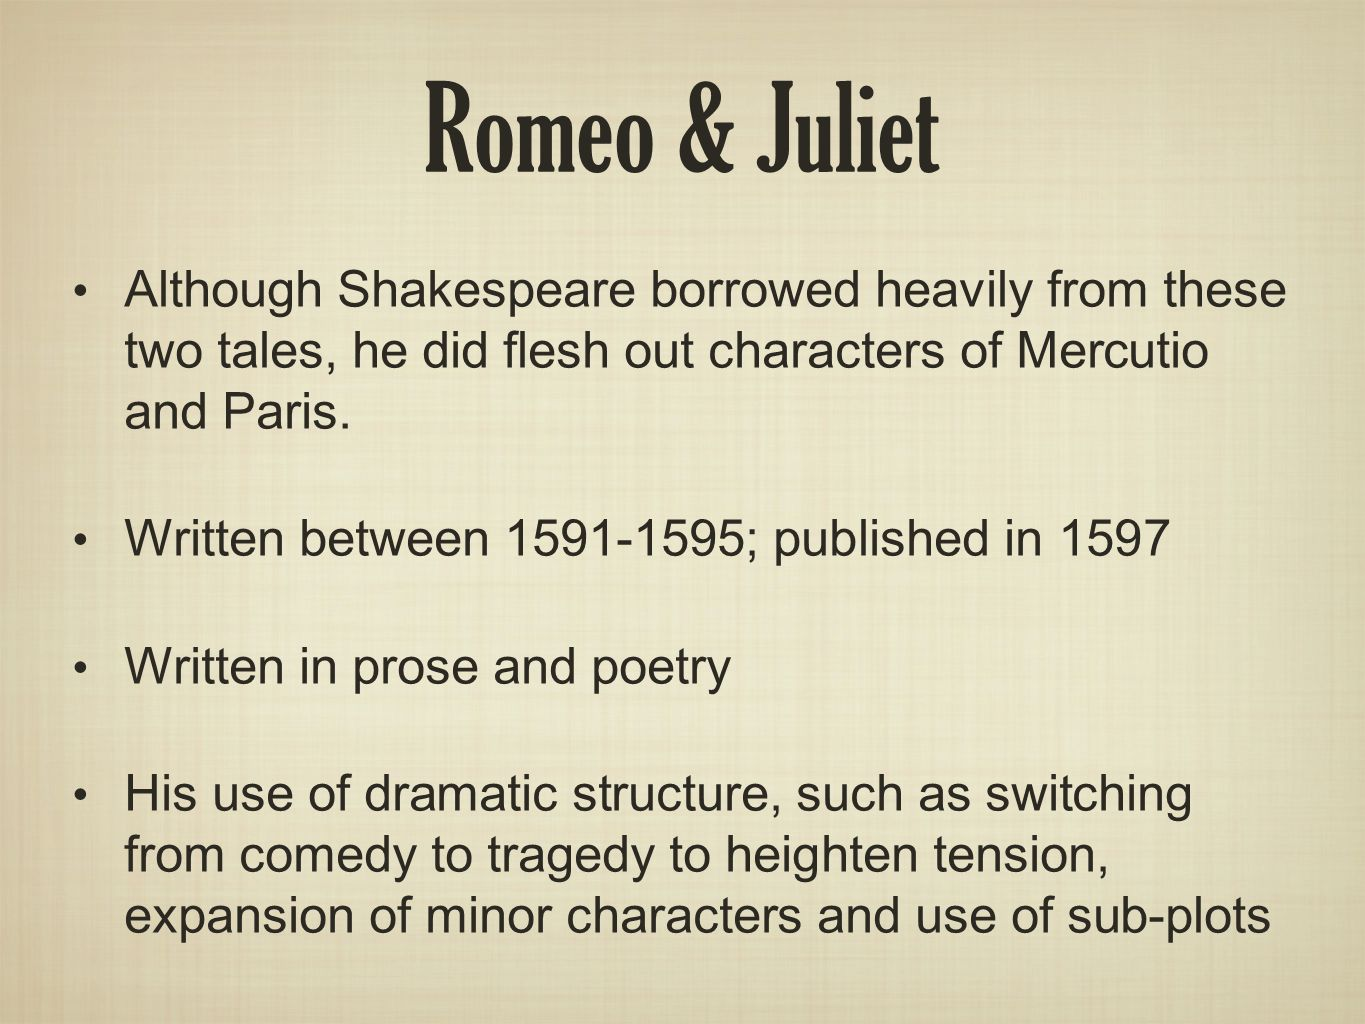 an analysis of violence in romeo and juliet by william shakespeare Baz luhrmann's kaleidoscopic film adaptation of romeo and juliet,  edition of romeo + juliet that shakespeare used all varieties of  shakespeare, william.